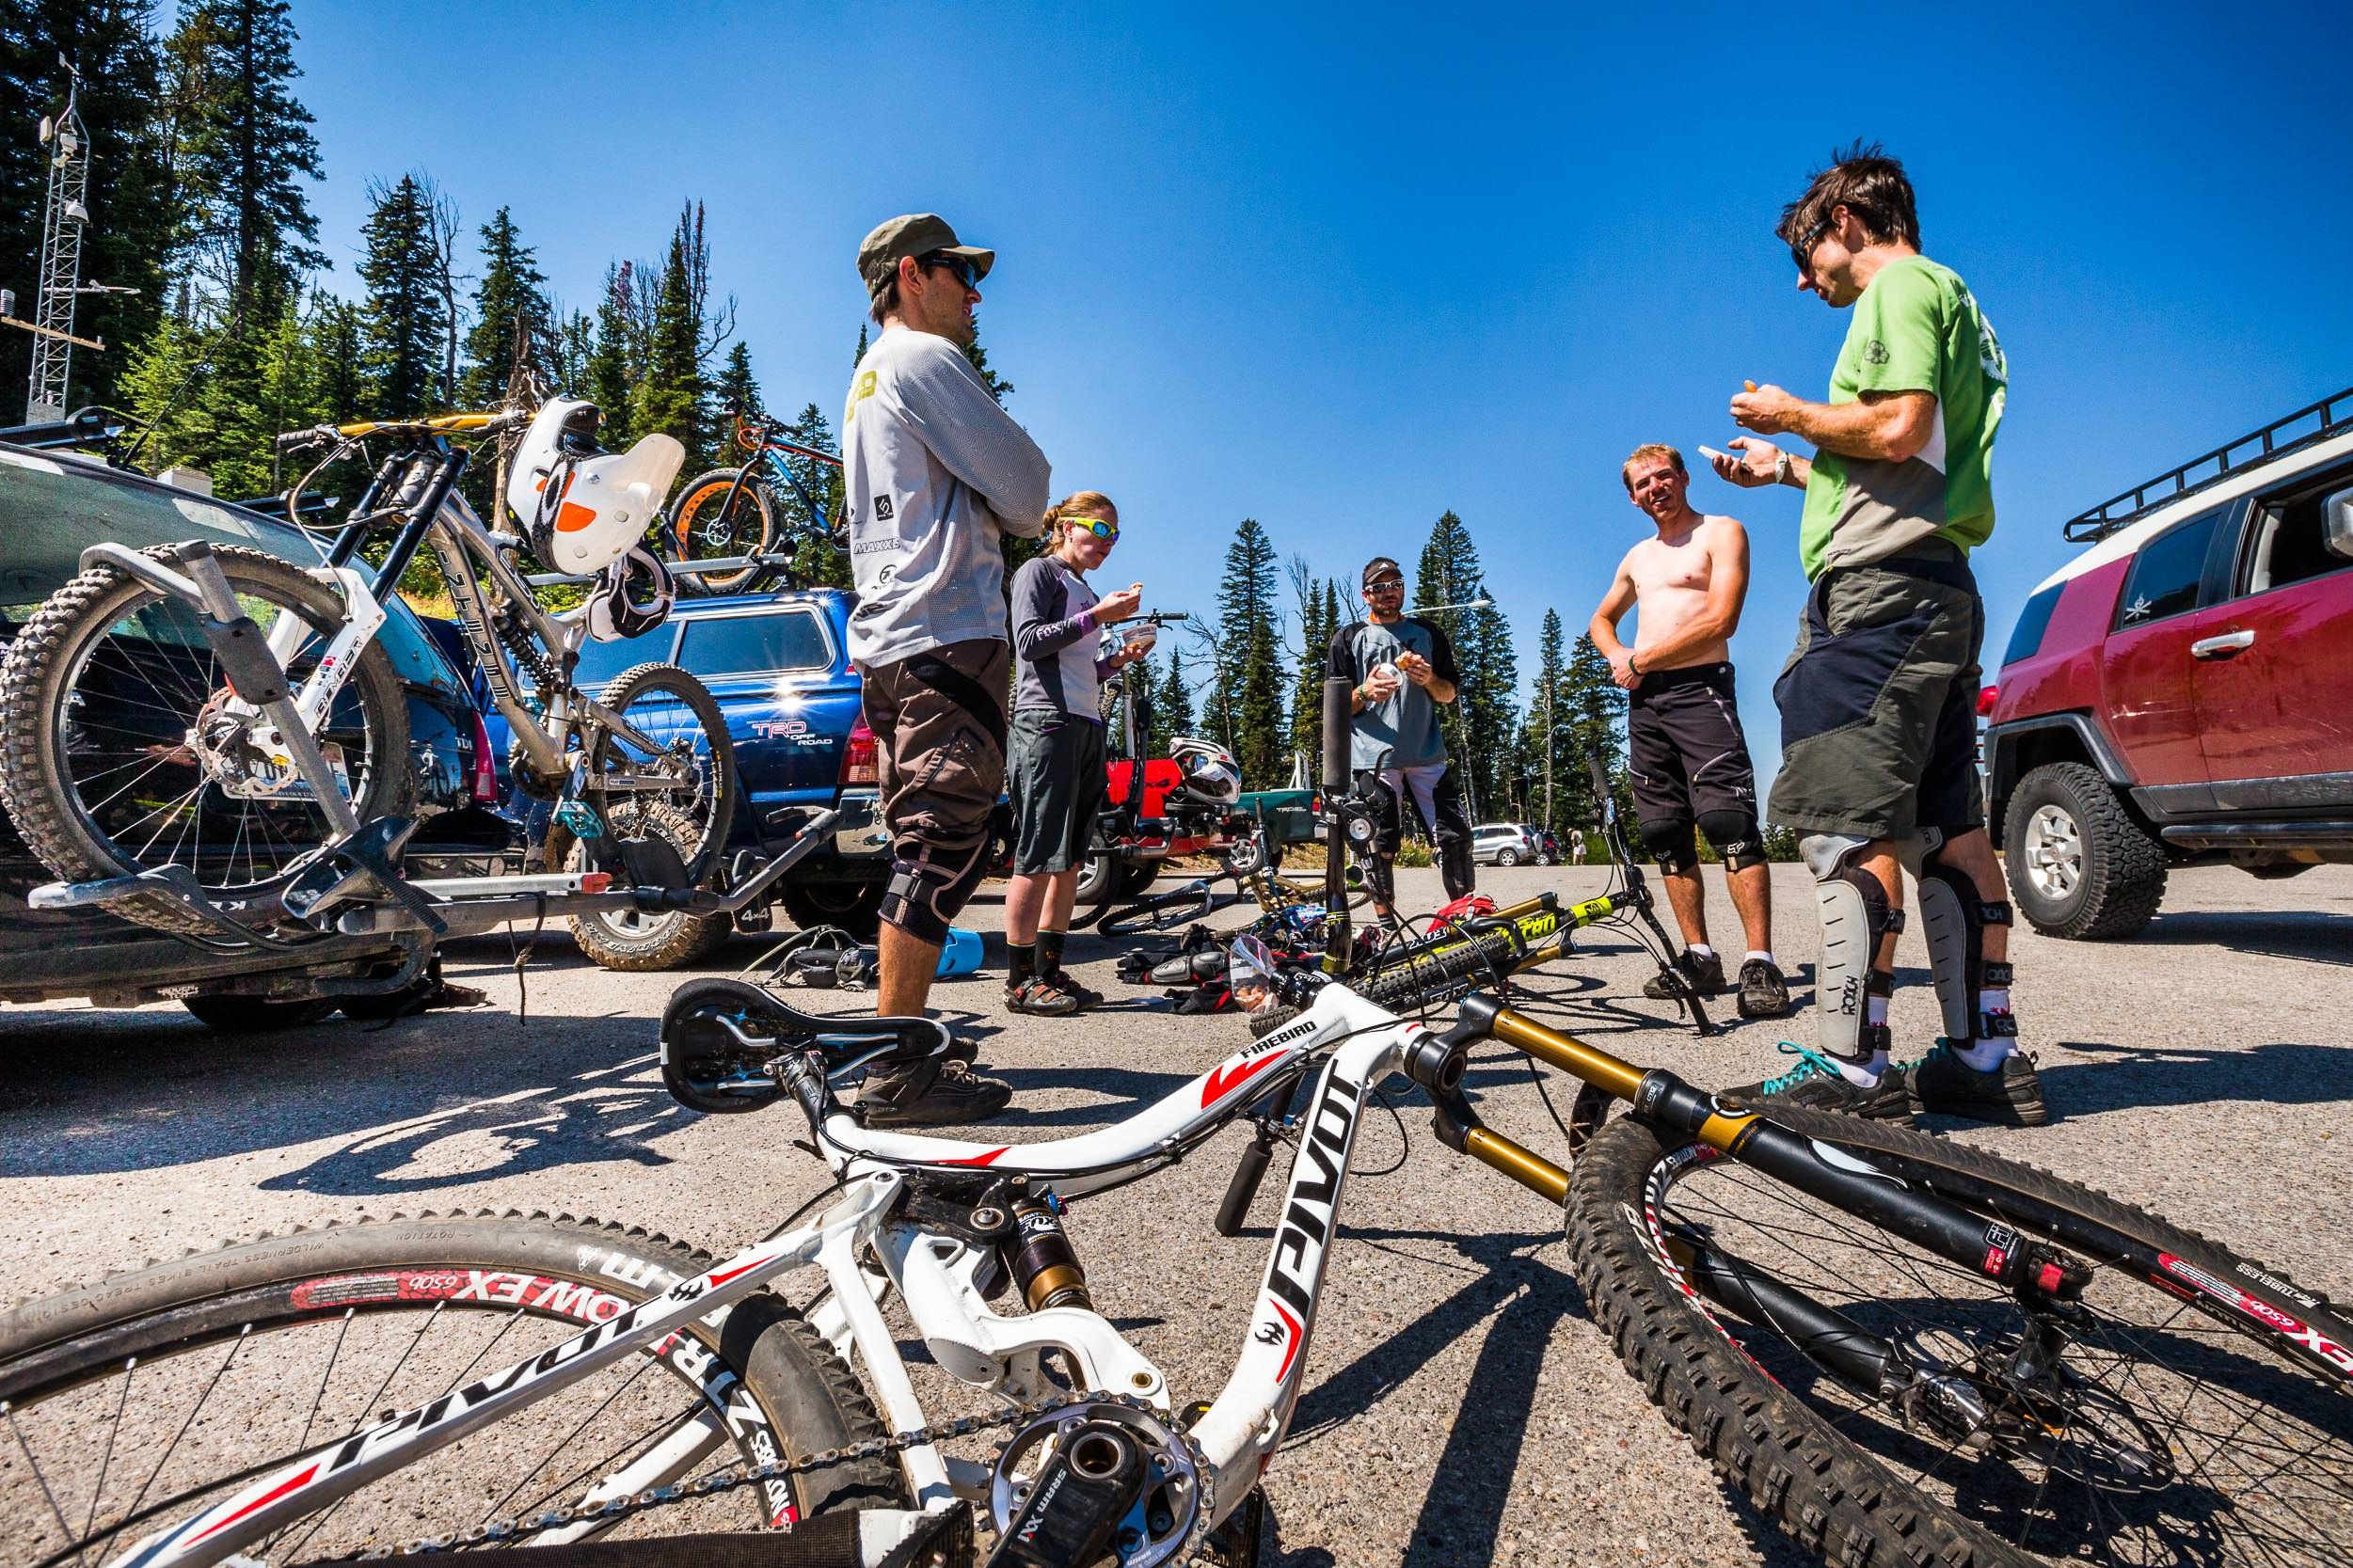 A group of downhill mountain bike riders plan their next assualt off Teton Pass